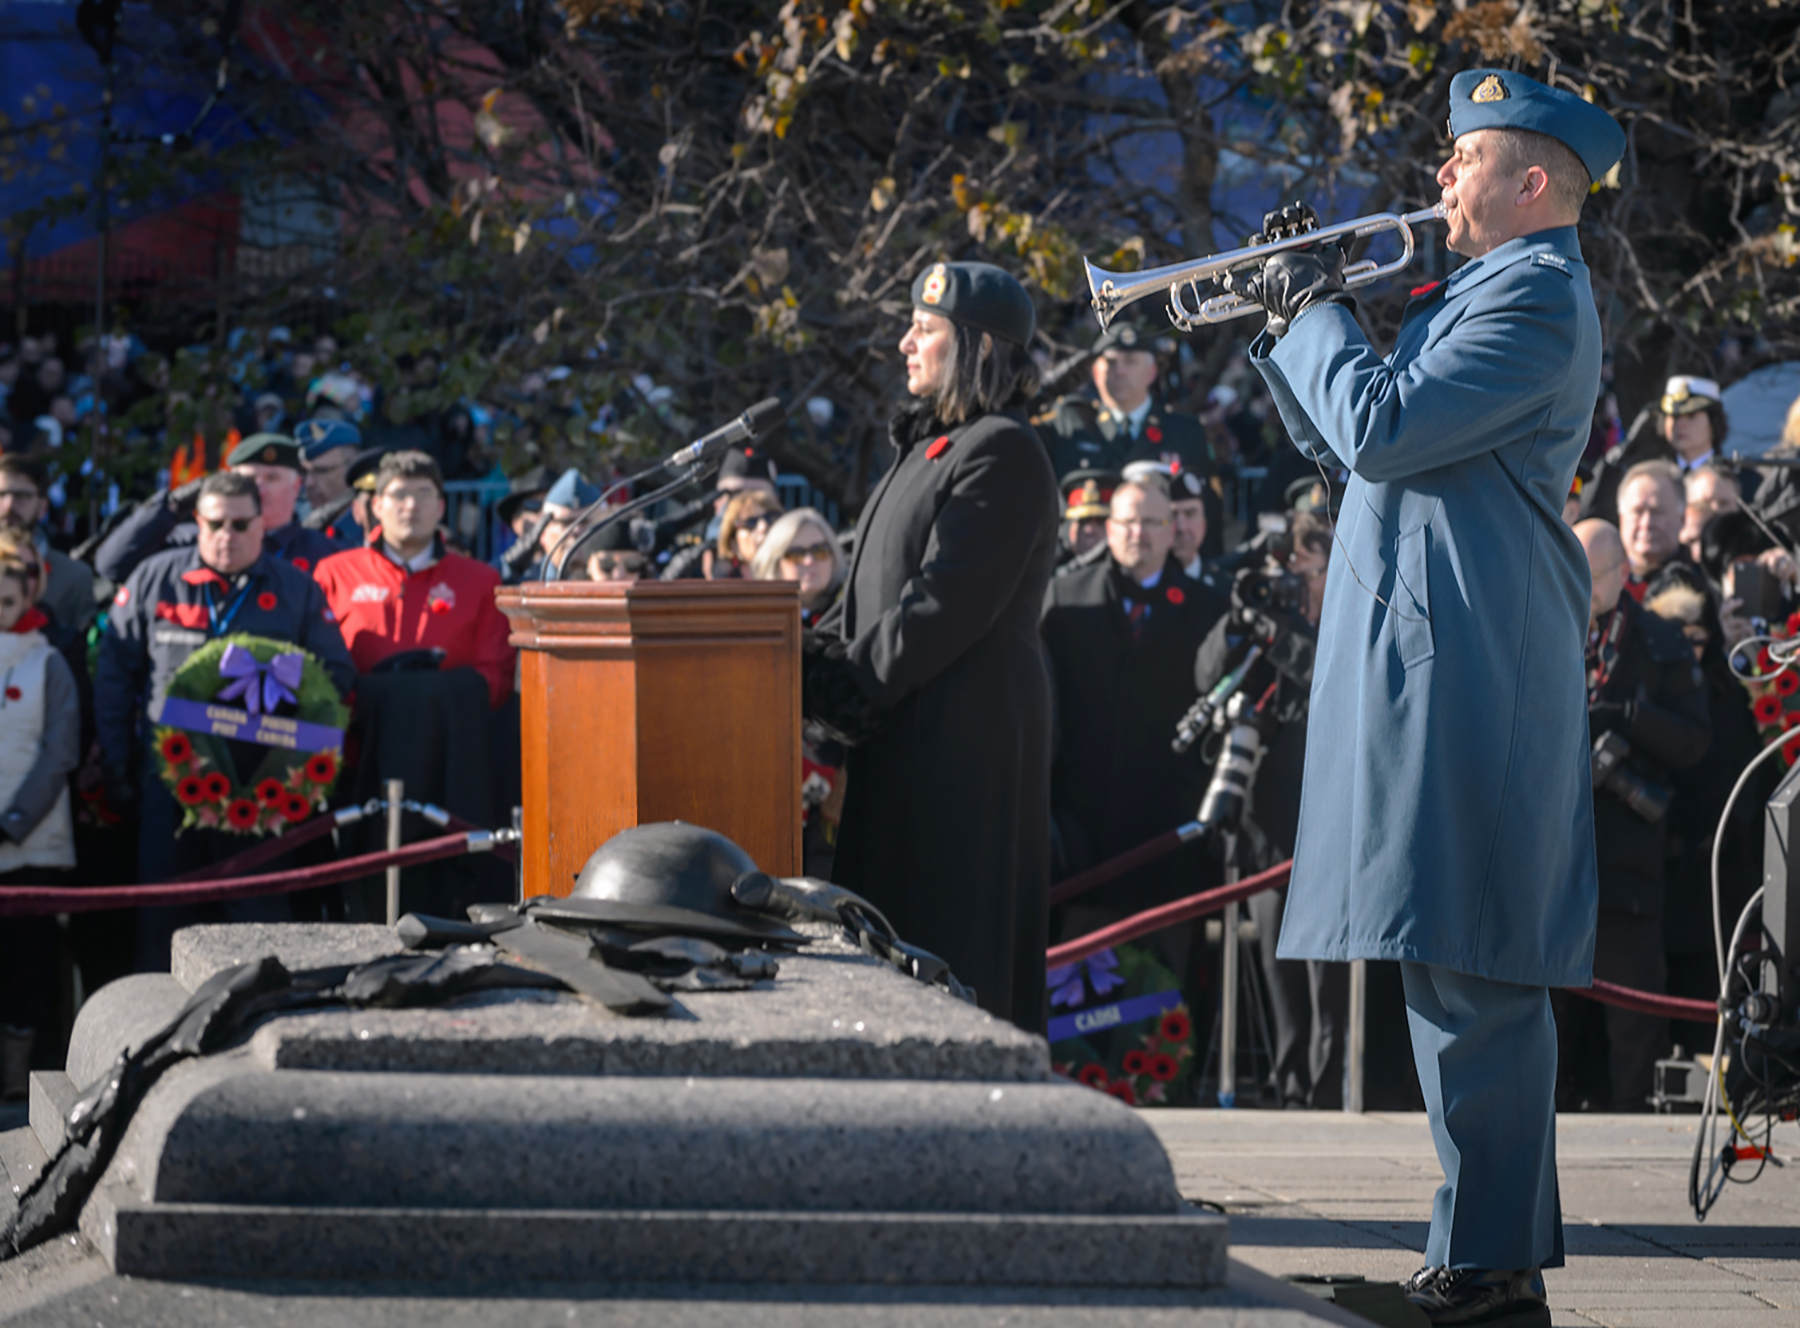 A man in a blue uniform plays a trumpet by a stone tomb with a metal soldier's helmet; a woman in a black uniform stands at a podium. Both wear poppies. Behind them are military members and civilians.